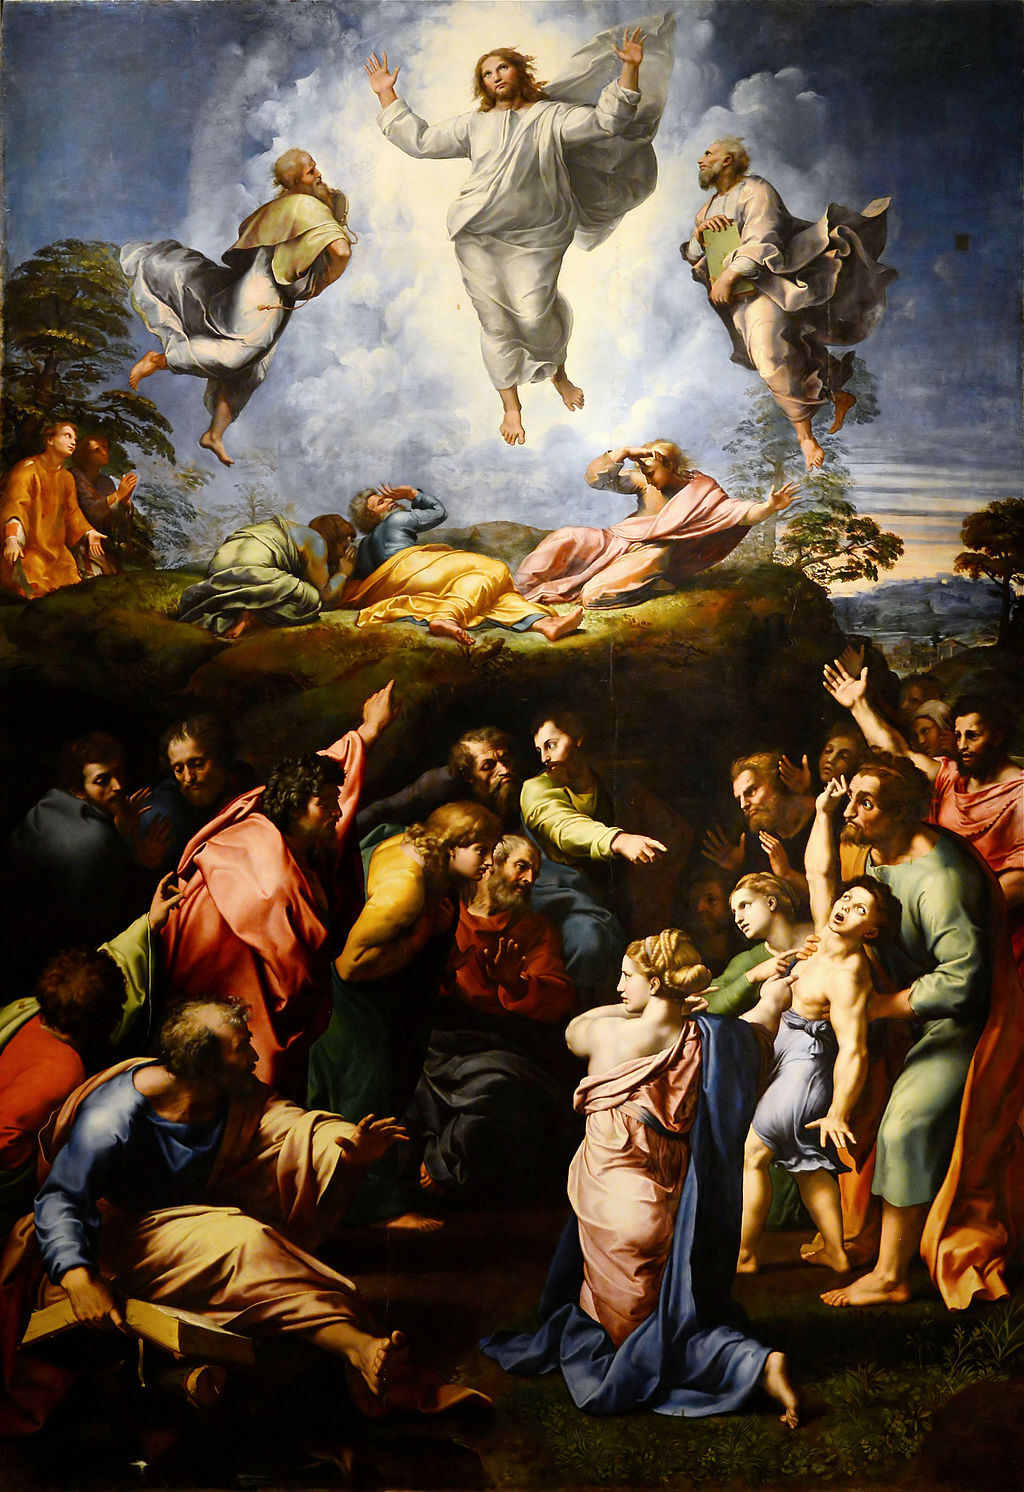 Raphael, The Transfiguration, 1516–20. Image via Wikimedia Commons.